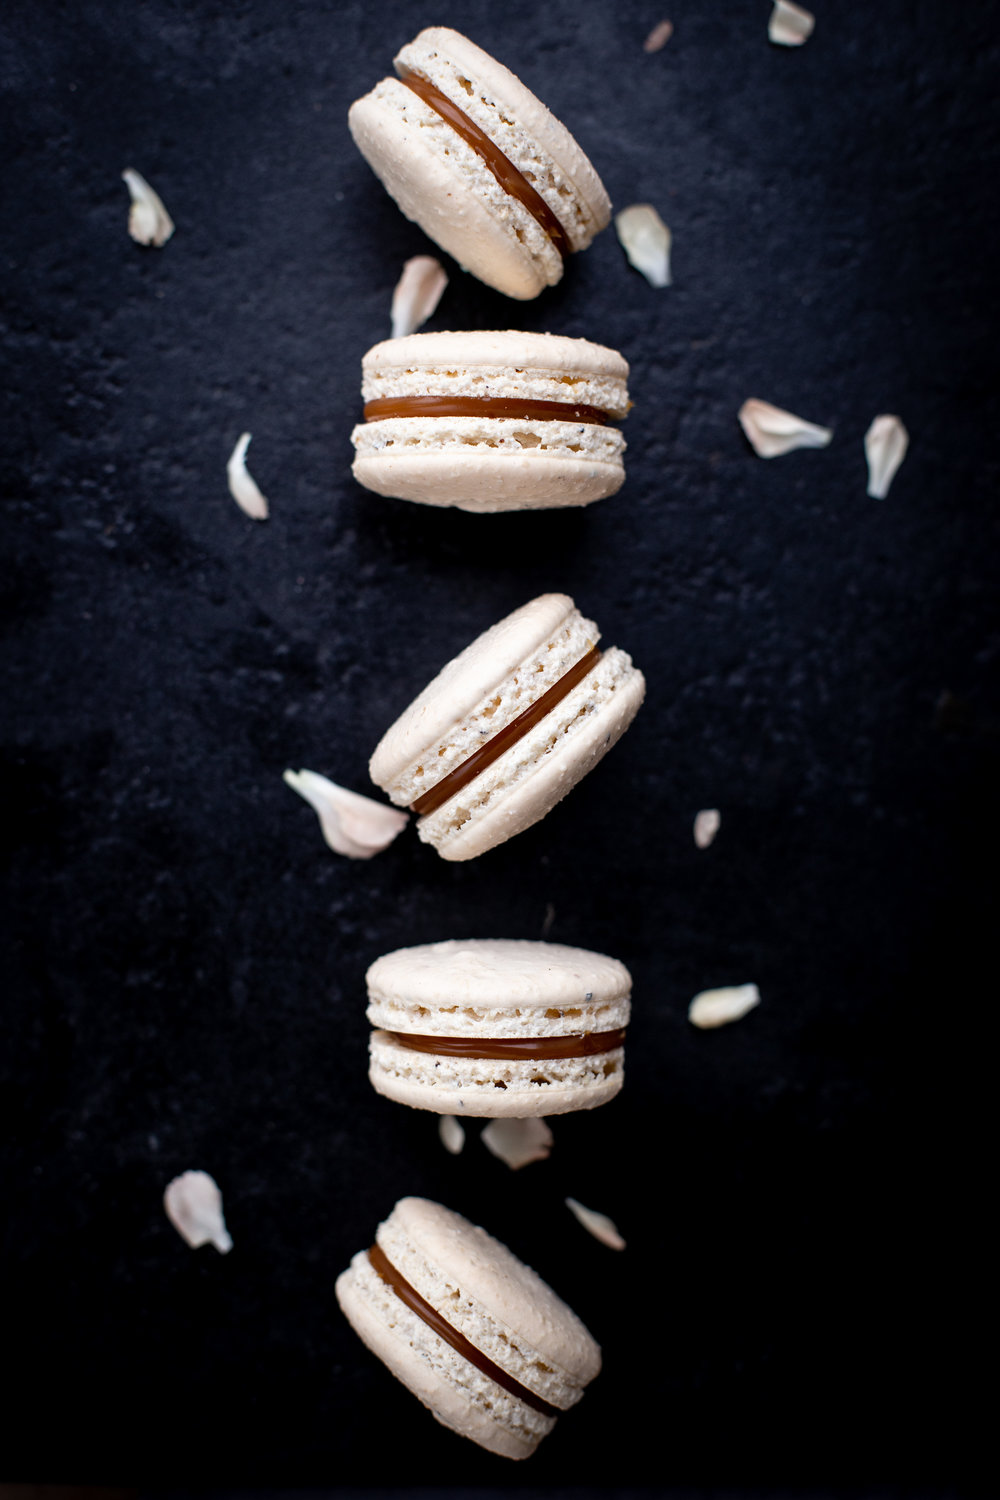 Caramel & cardamom - sugar, almond meal, egg whites, white chocolate, cream, cardamom( VL, G )1,40,-/ pcs